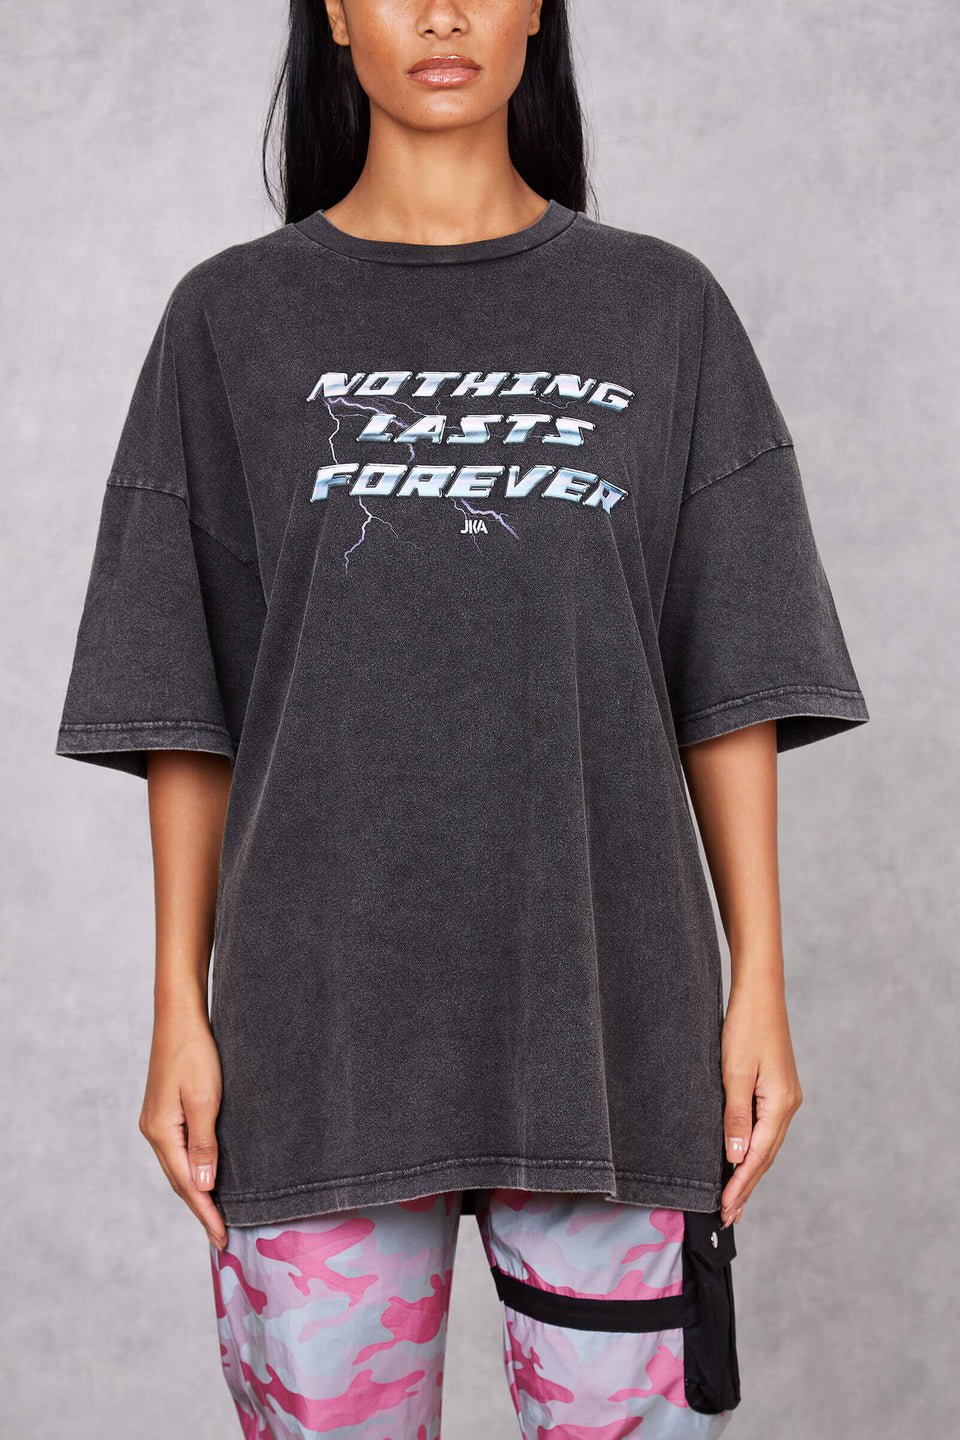 Womens NFL Oversized T-Shirt